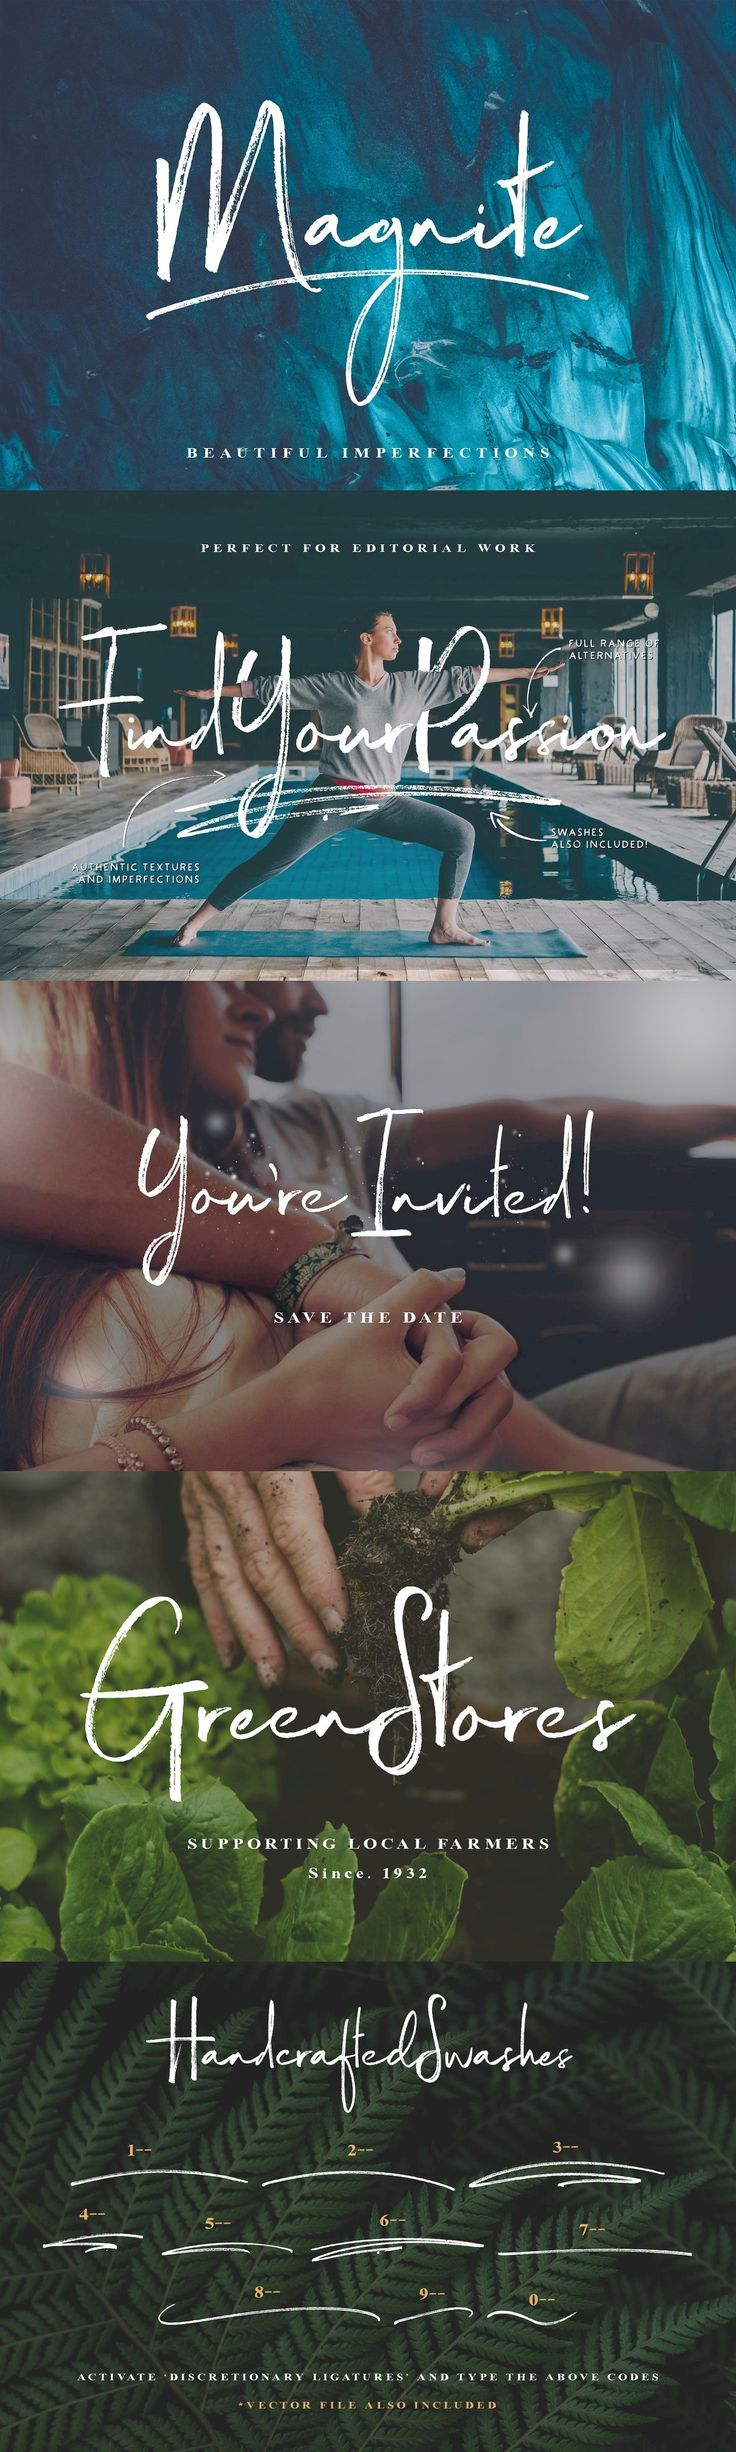 Magnite Brush Script - I'm happy to introduce you to Magnite - A handwritten brush font jam-packed with cha...